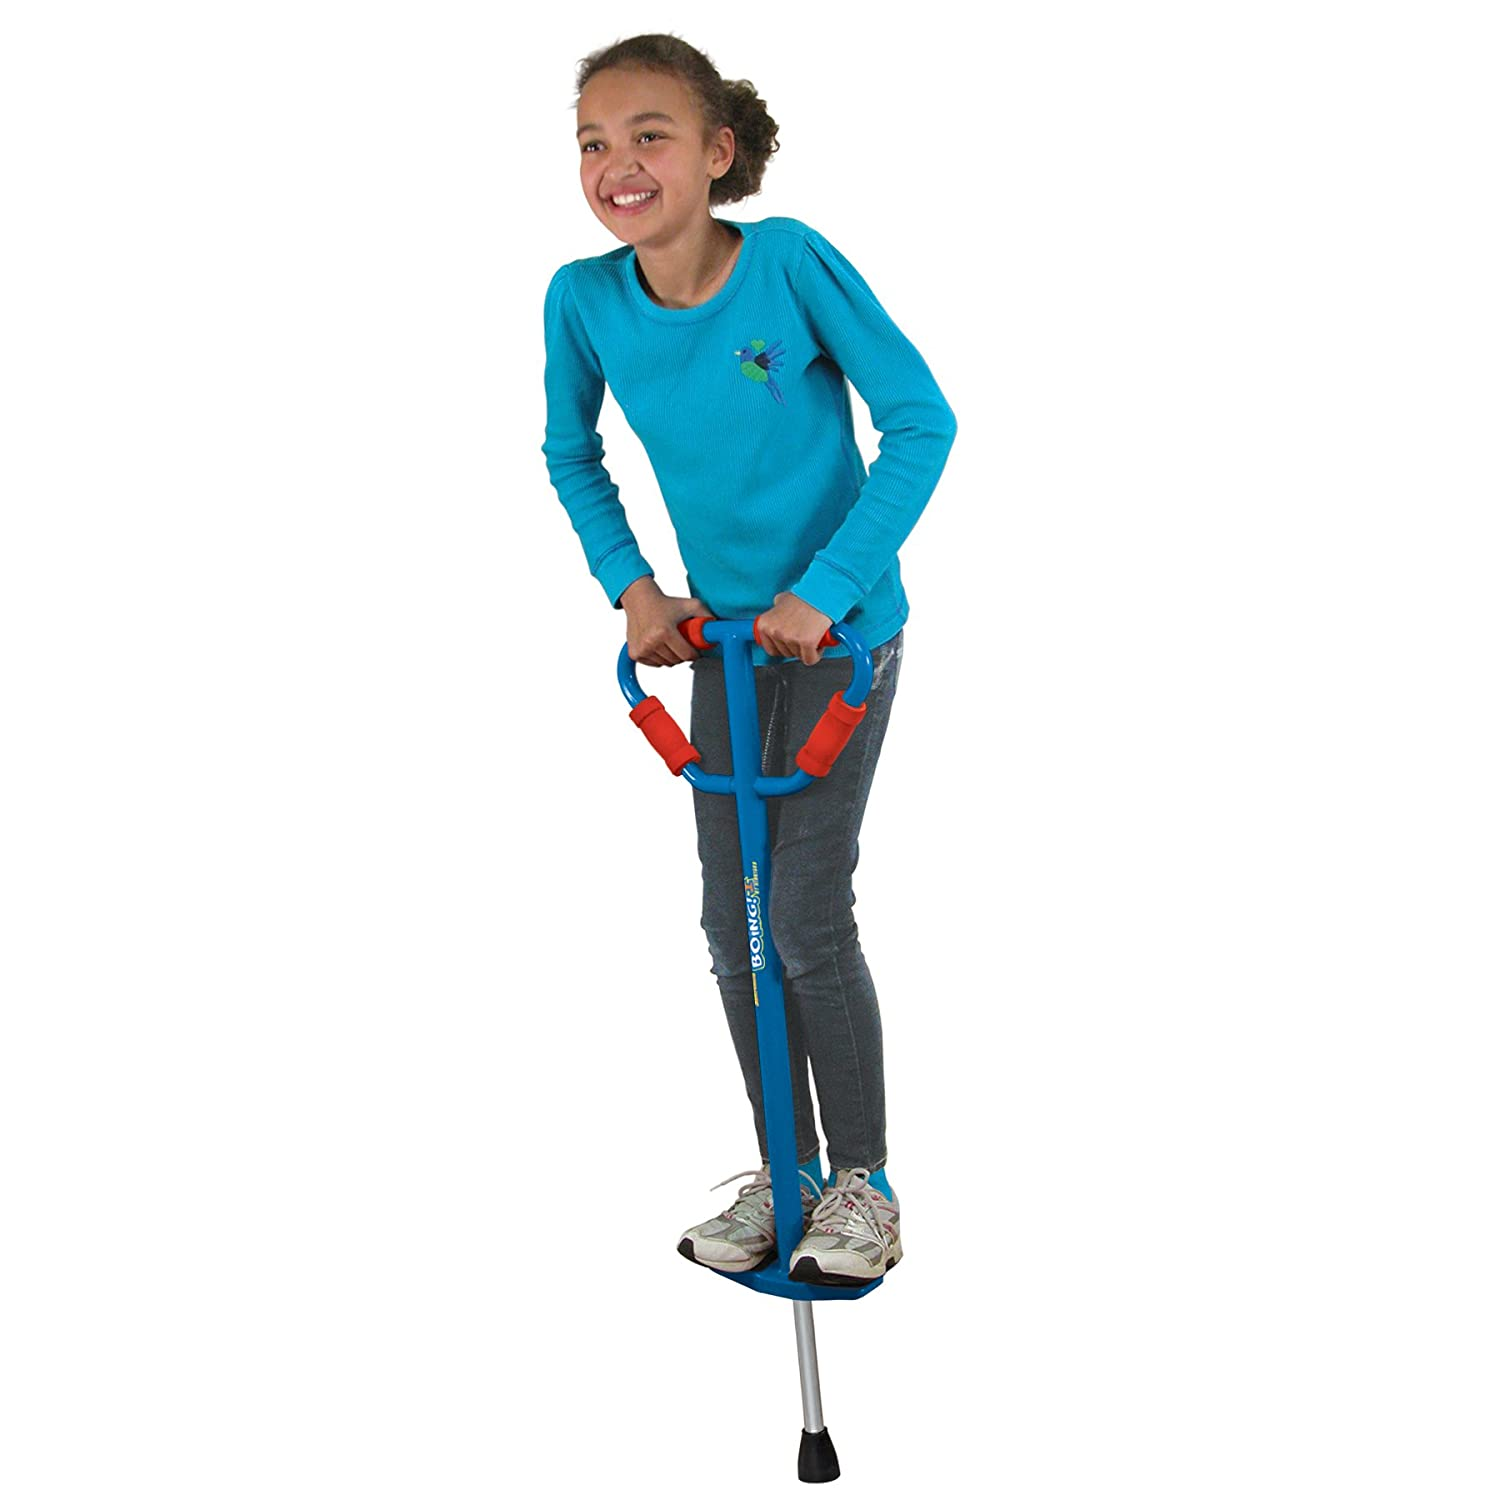 Geospace Jumparoo Boing - Medium Pogo Stick By Air Kicks 11152